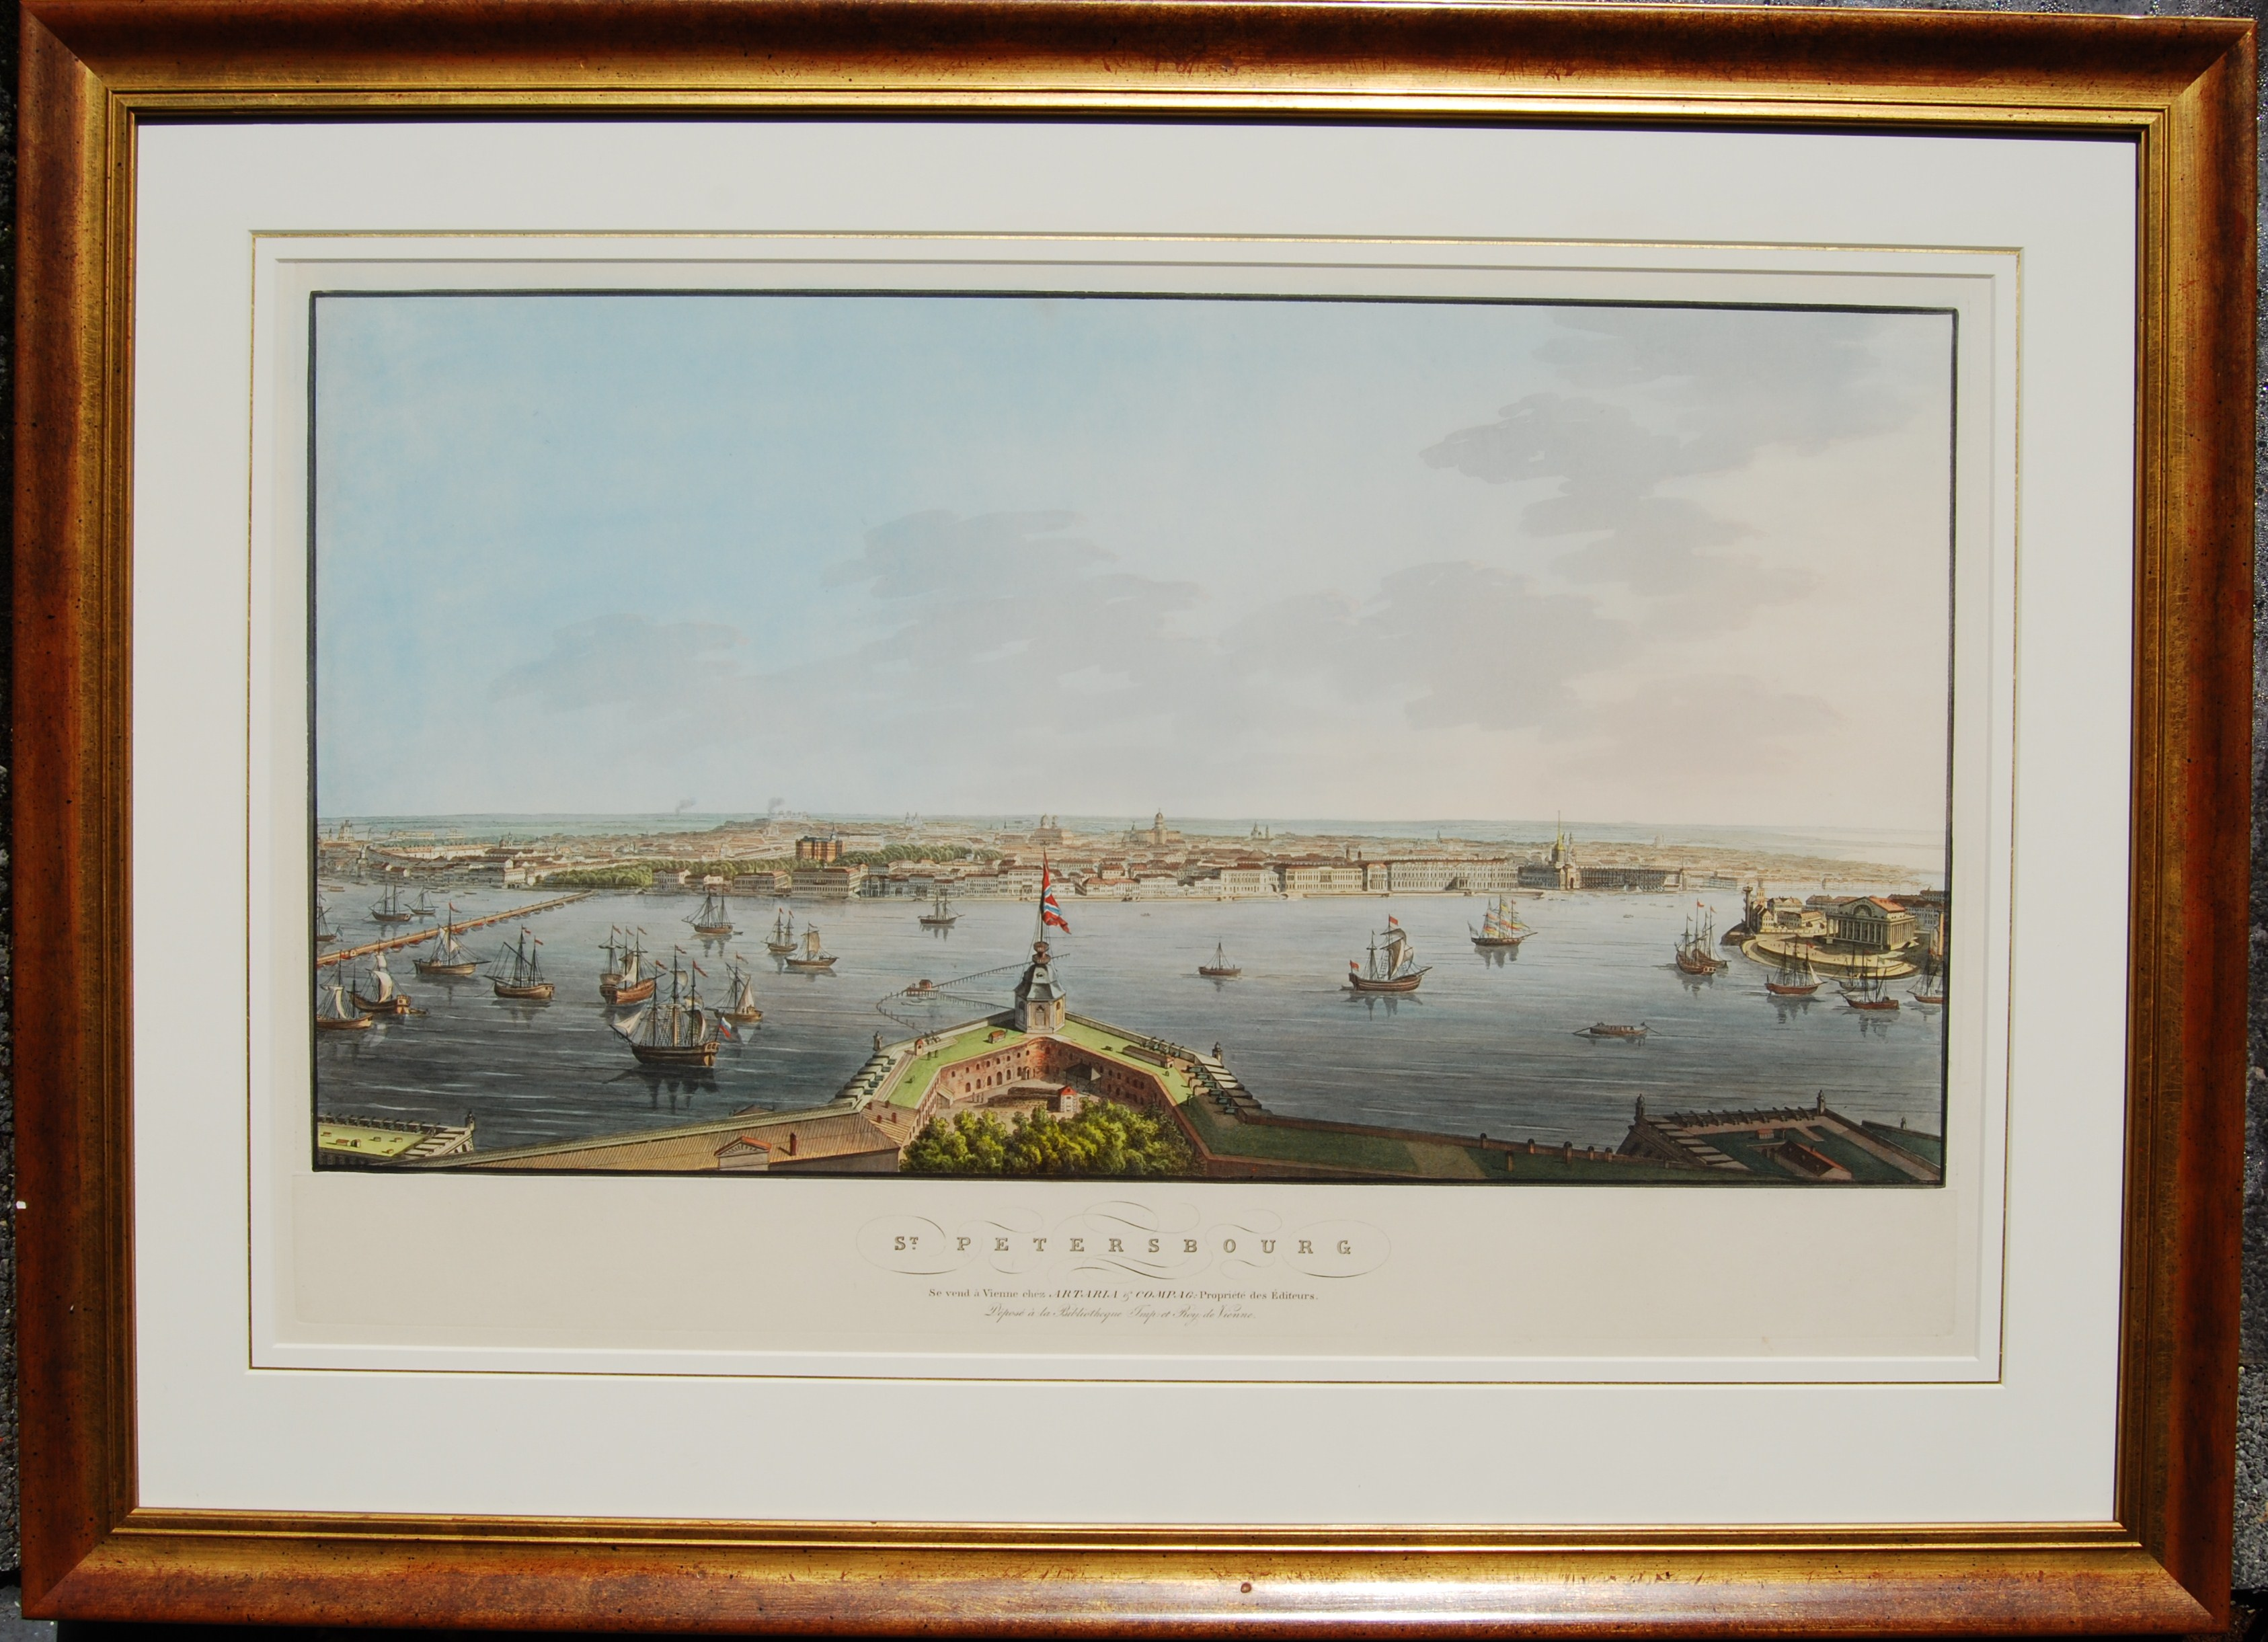 St Petersburg Original Rare 19th Century Lithography St Petersburg